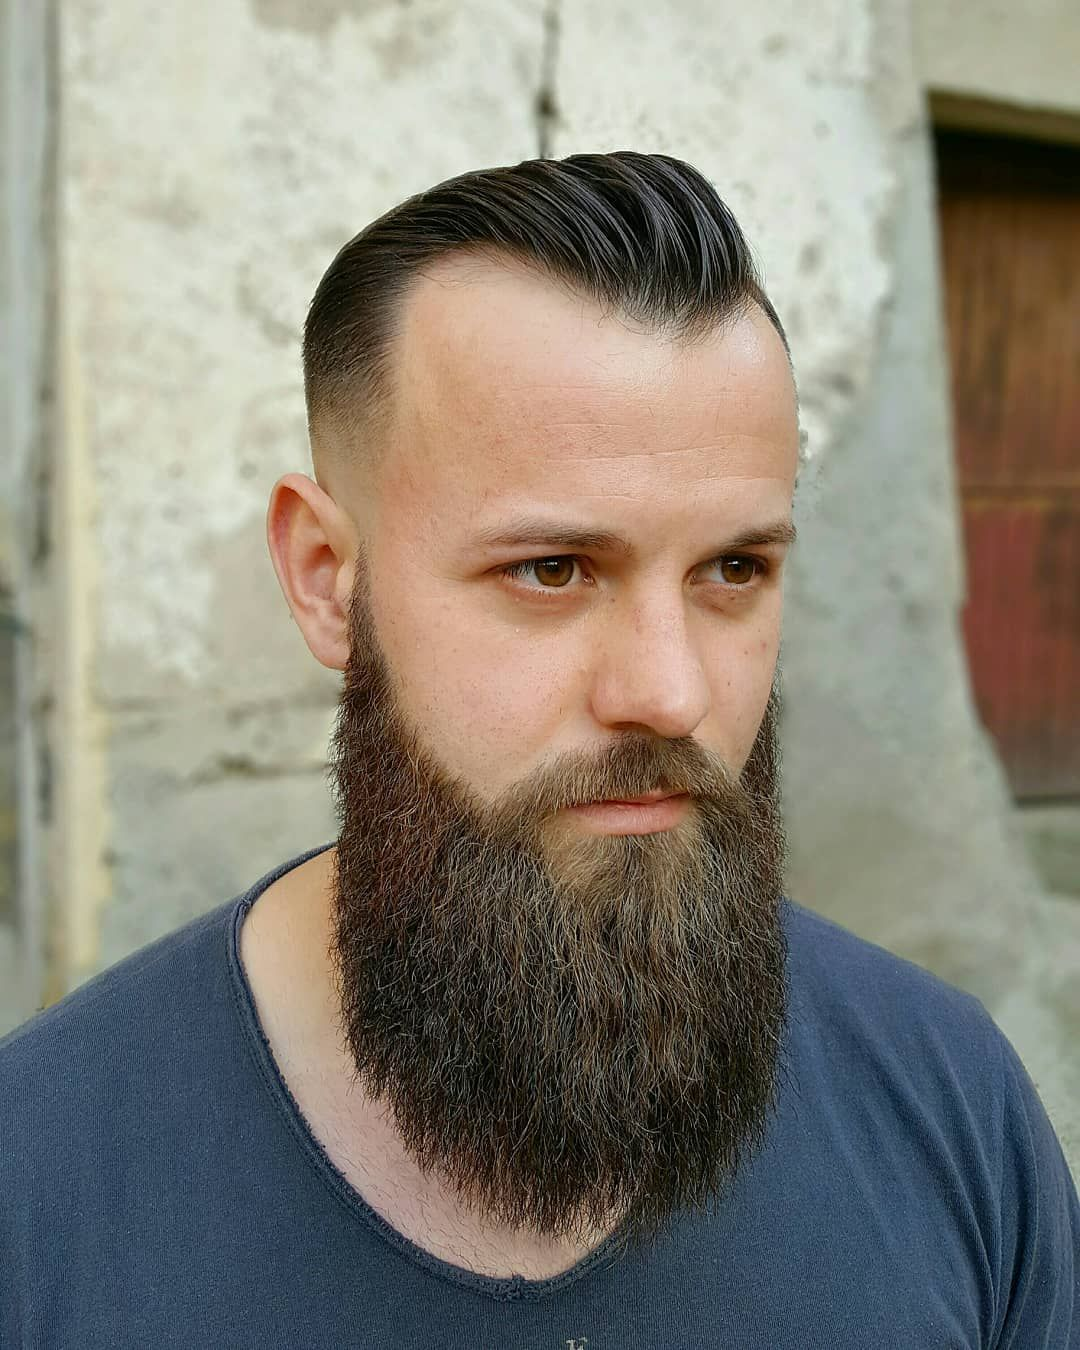 20 fantastic hairstyles for men with thin hair beard